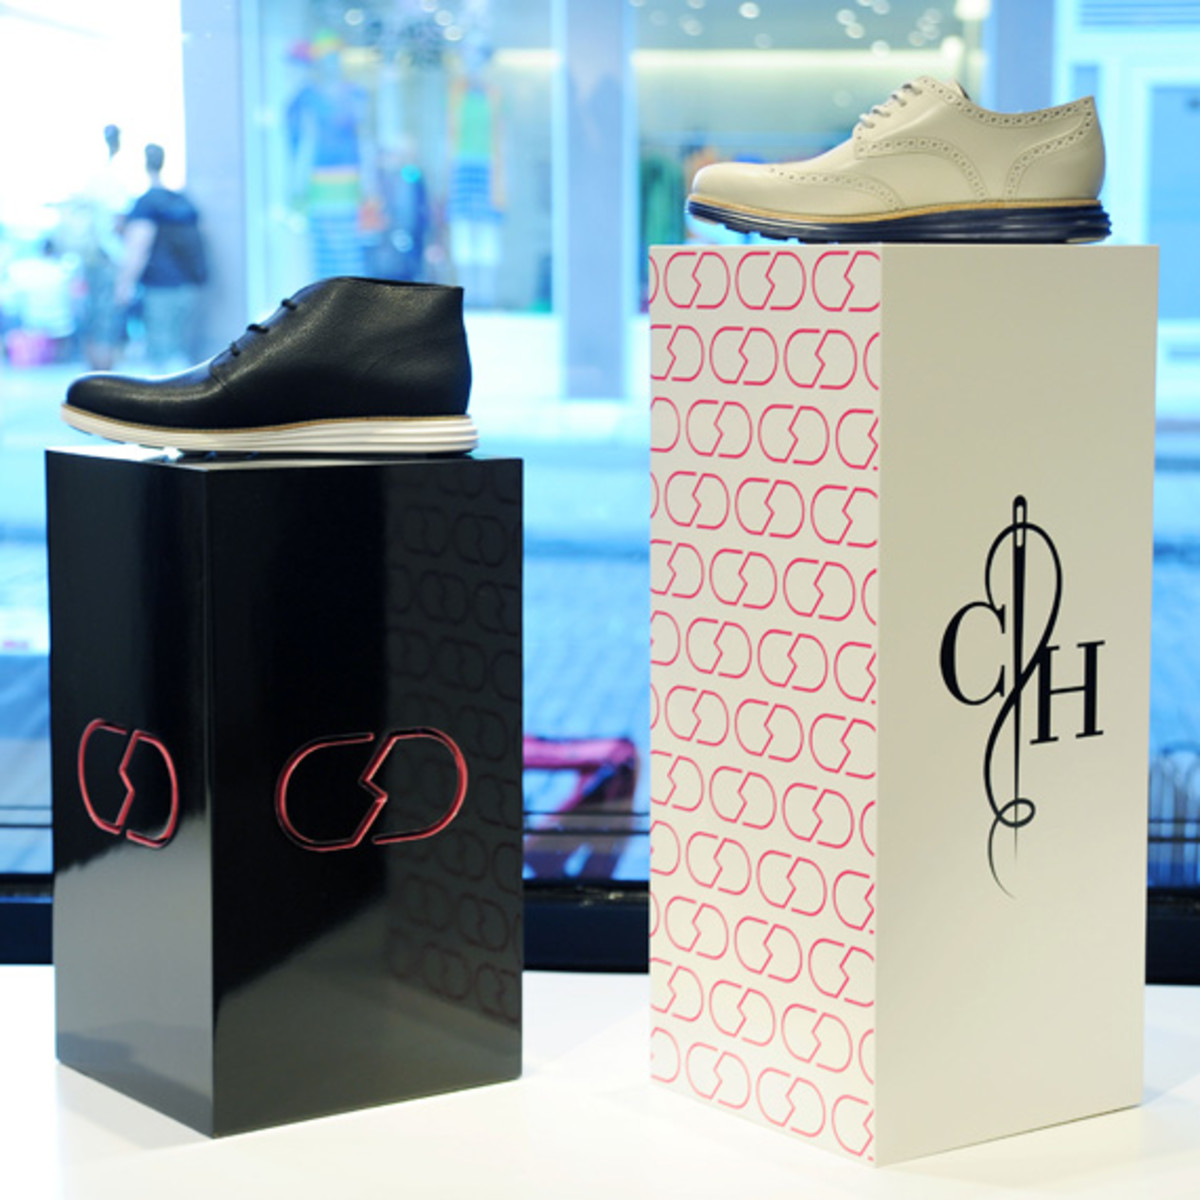 fragment-design-cole-haan-lunargrand-collection-launch-03